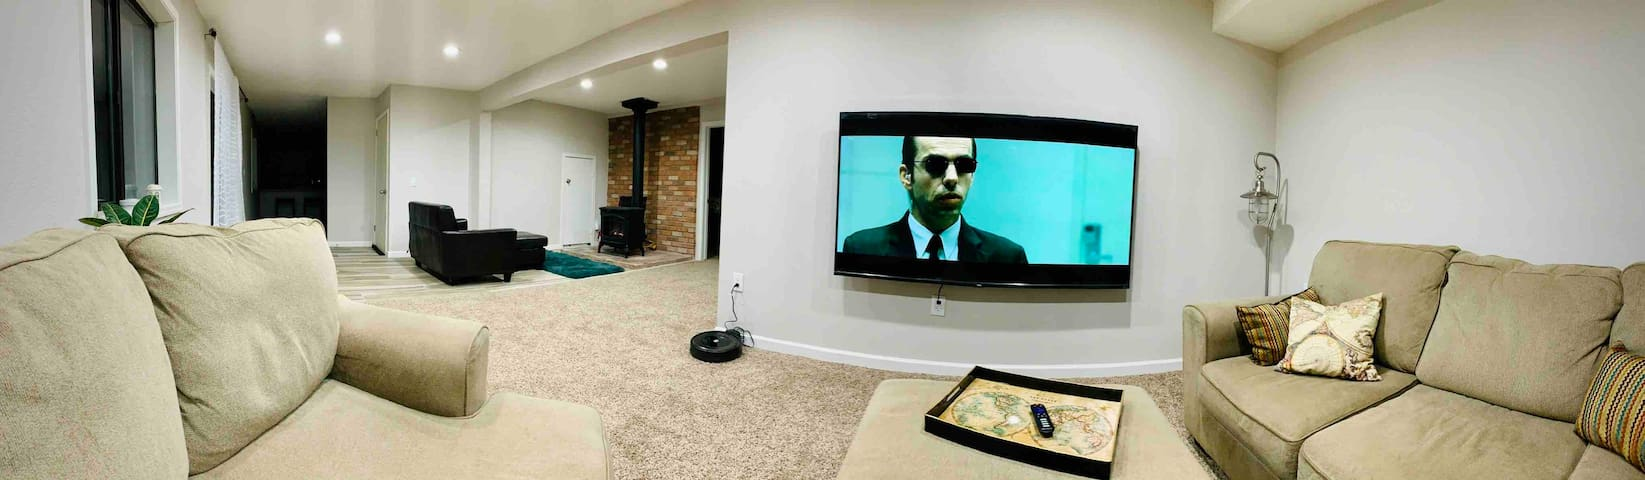 """Spacious living room space with 75"""" 4K UHD Roku TV with Netflix, Amazon Video, and HDMI cable or stream from your device; large couch and separate seating in front of the fireplace :-)"""